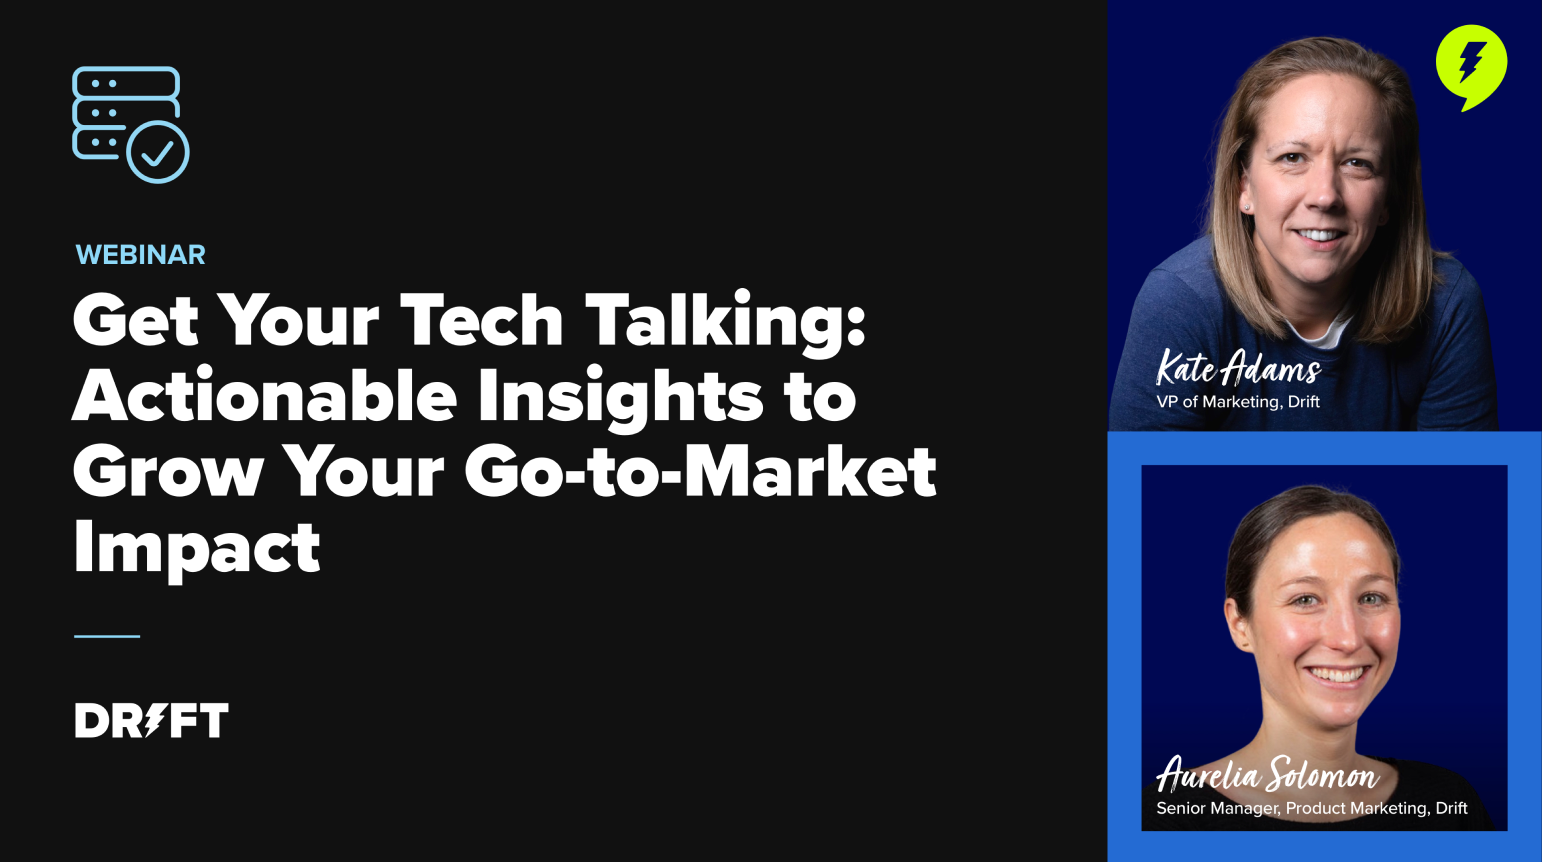 Get Your Tech Talking INSIDER 1